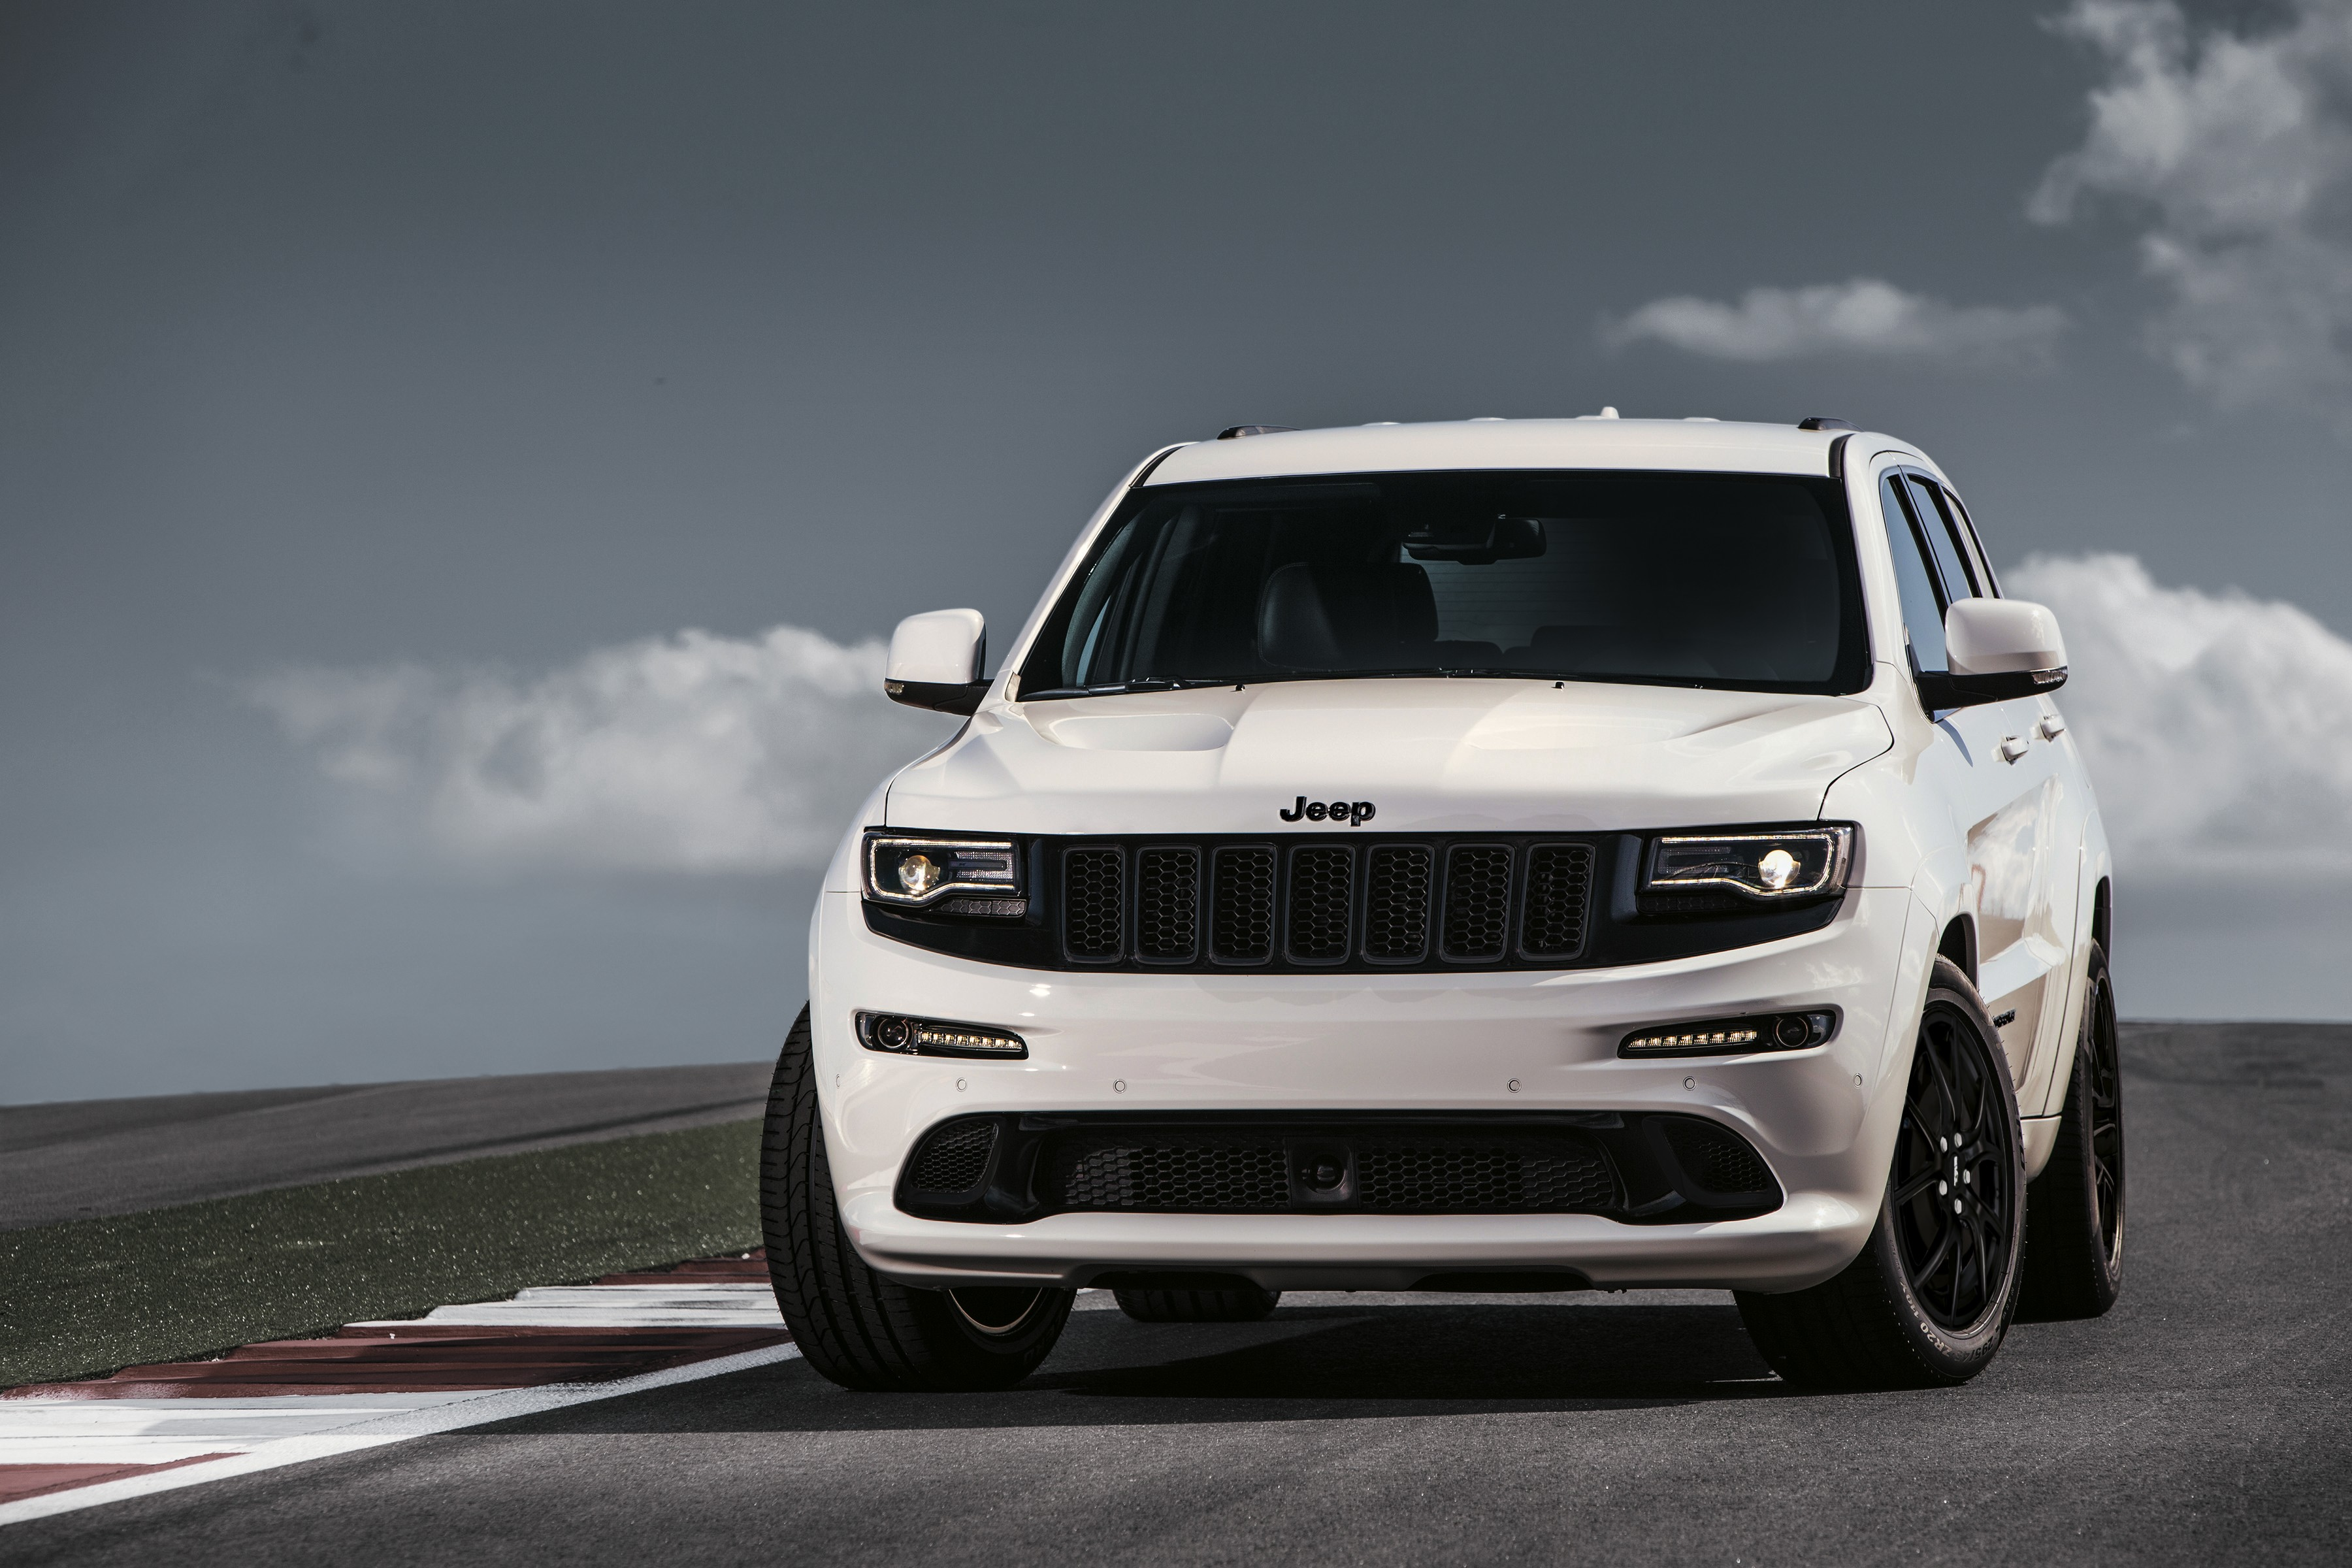 Jeep C Suv >> Jeep Grand Cherokee Lineup Grows With SRT Night Edition In the United Kingdom - autoevolution